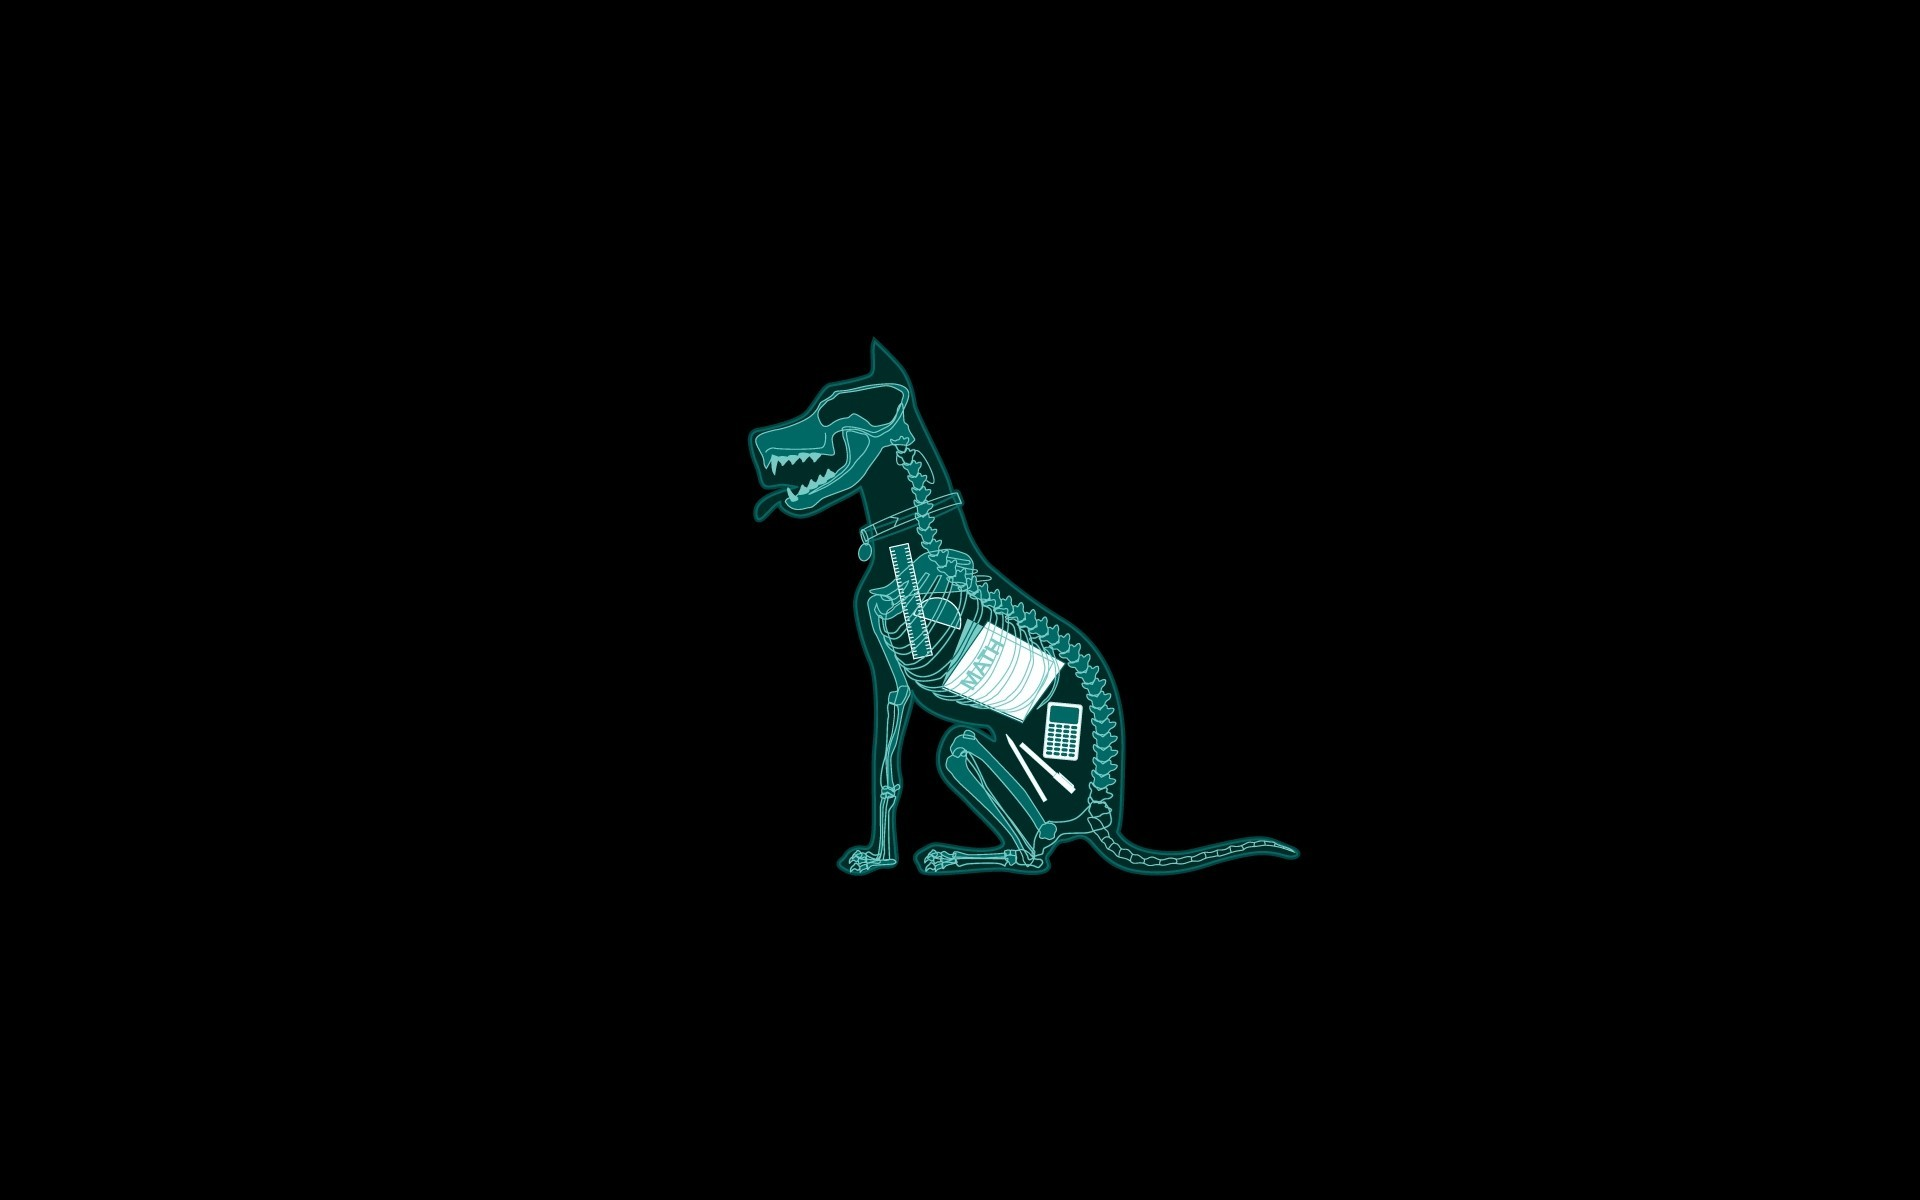 1920x1200 Anatomy Black Background Dark Dogs Funny Mathematics Minimalistic Simple  X-Ray